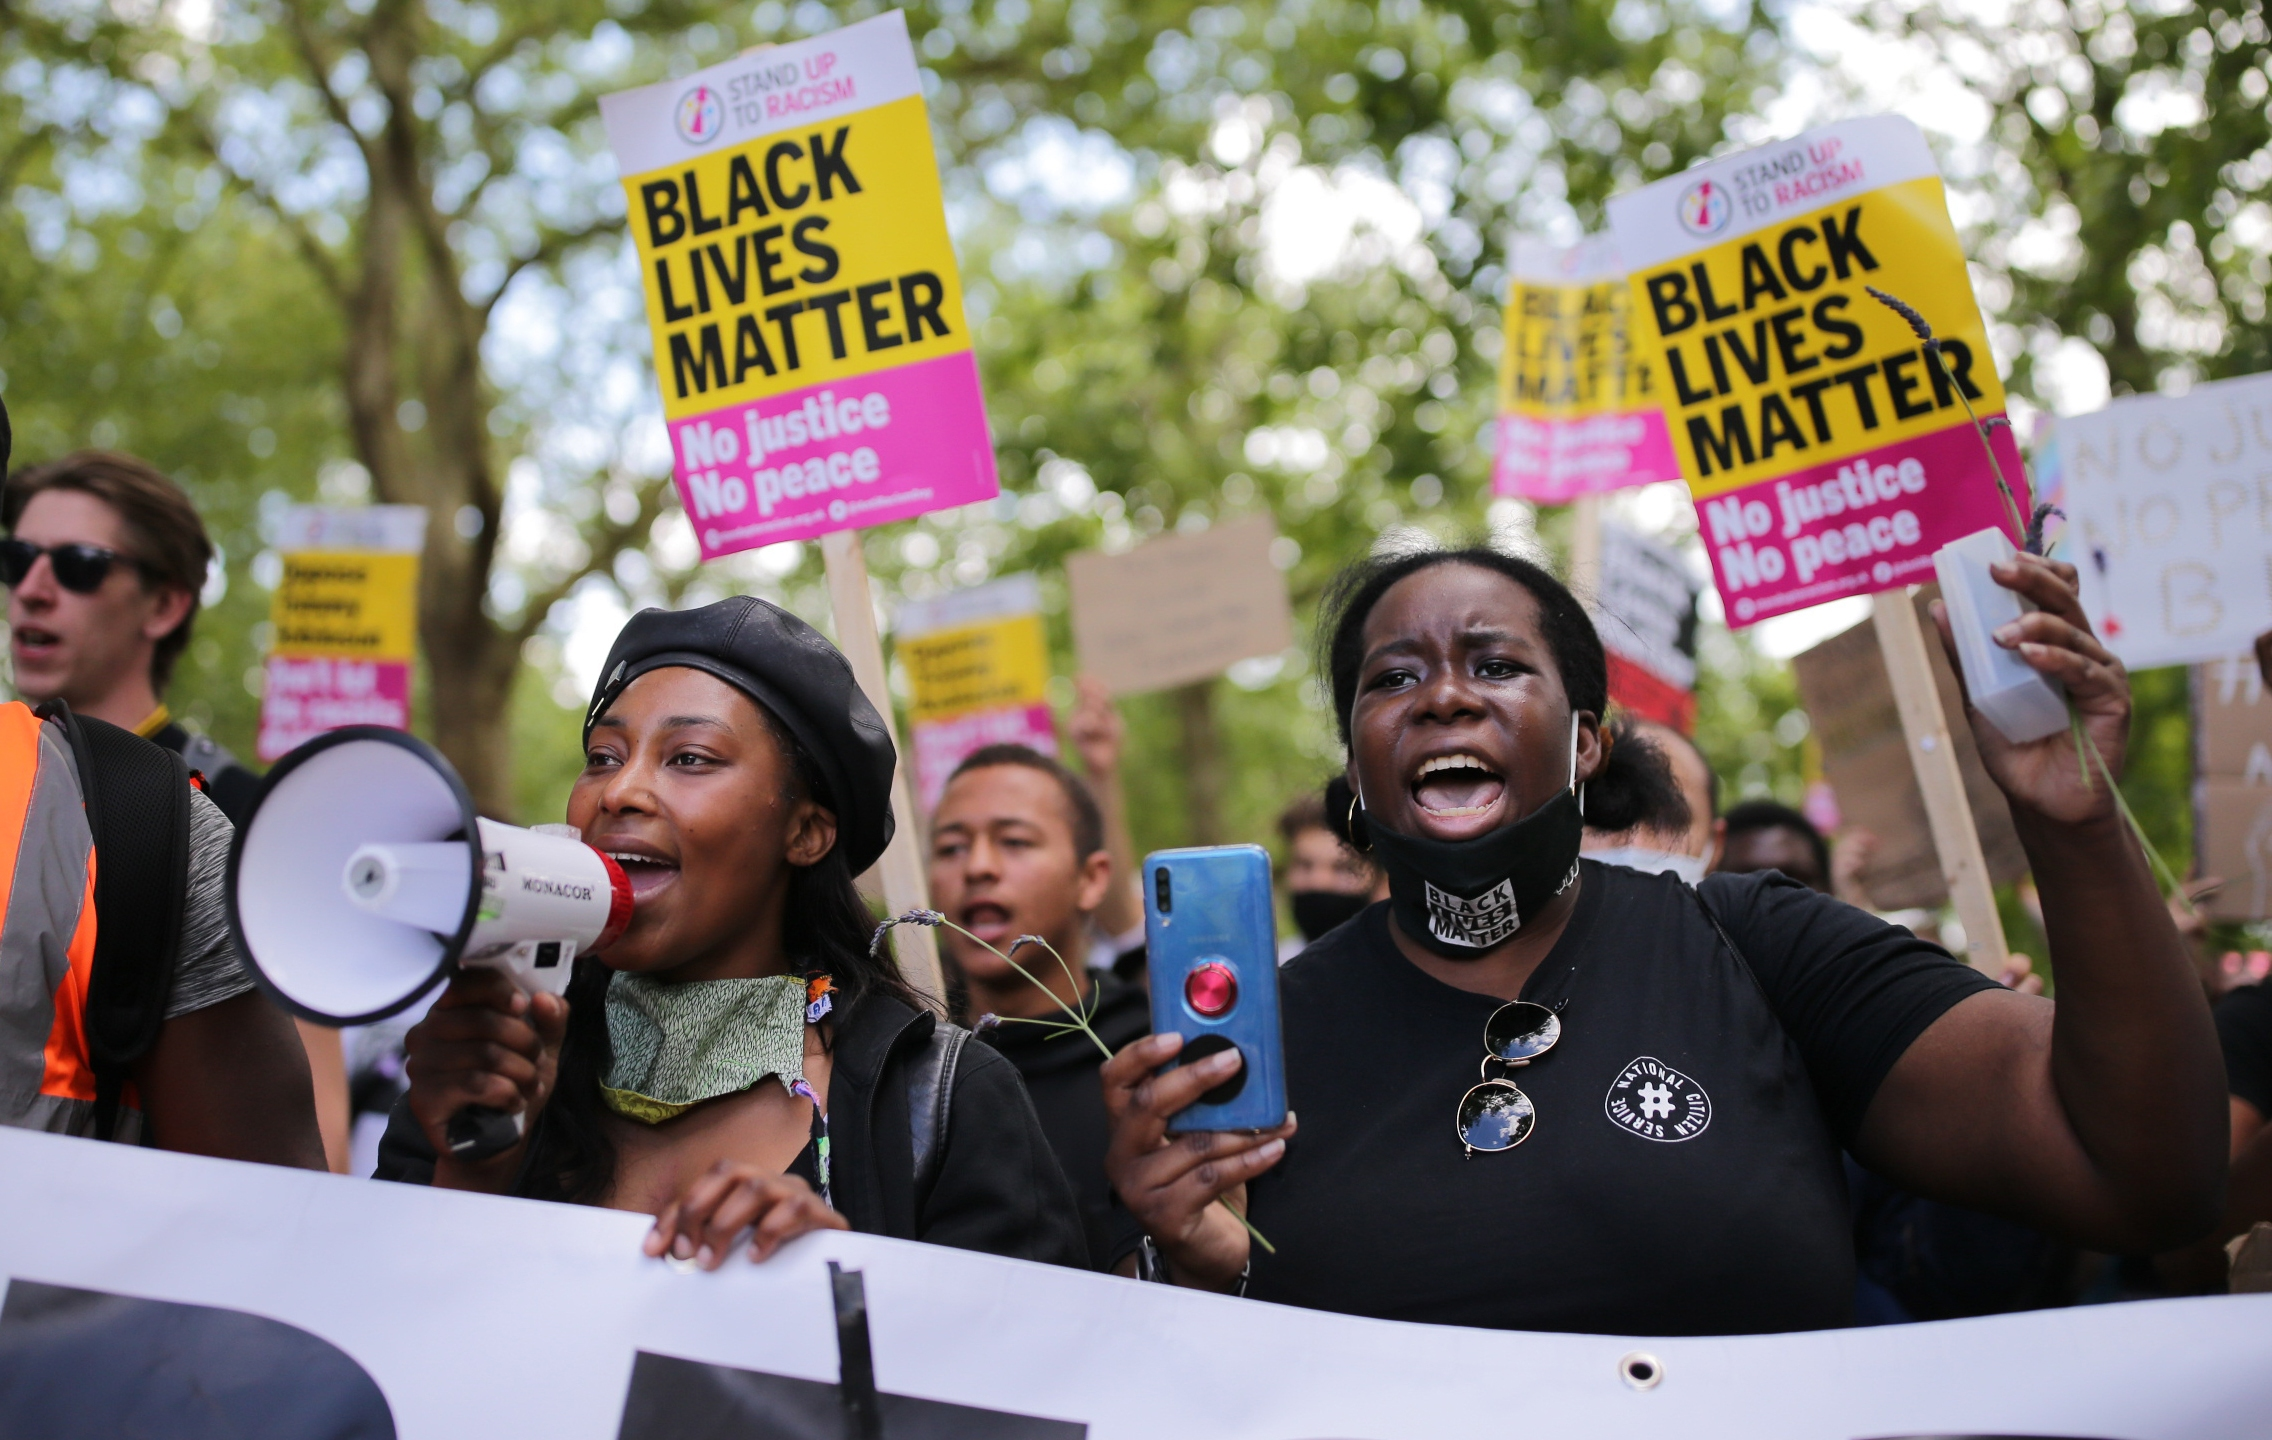 Anti-racism protesters attend a Black Lives Matter demonstration on June 13, 2020, in London, England. (Luke Dray/Getty Images)